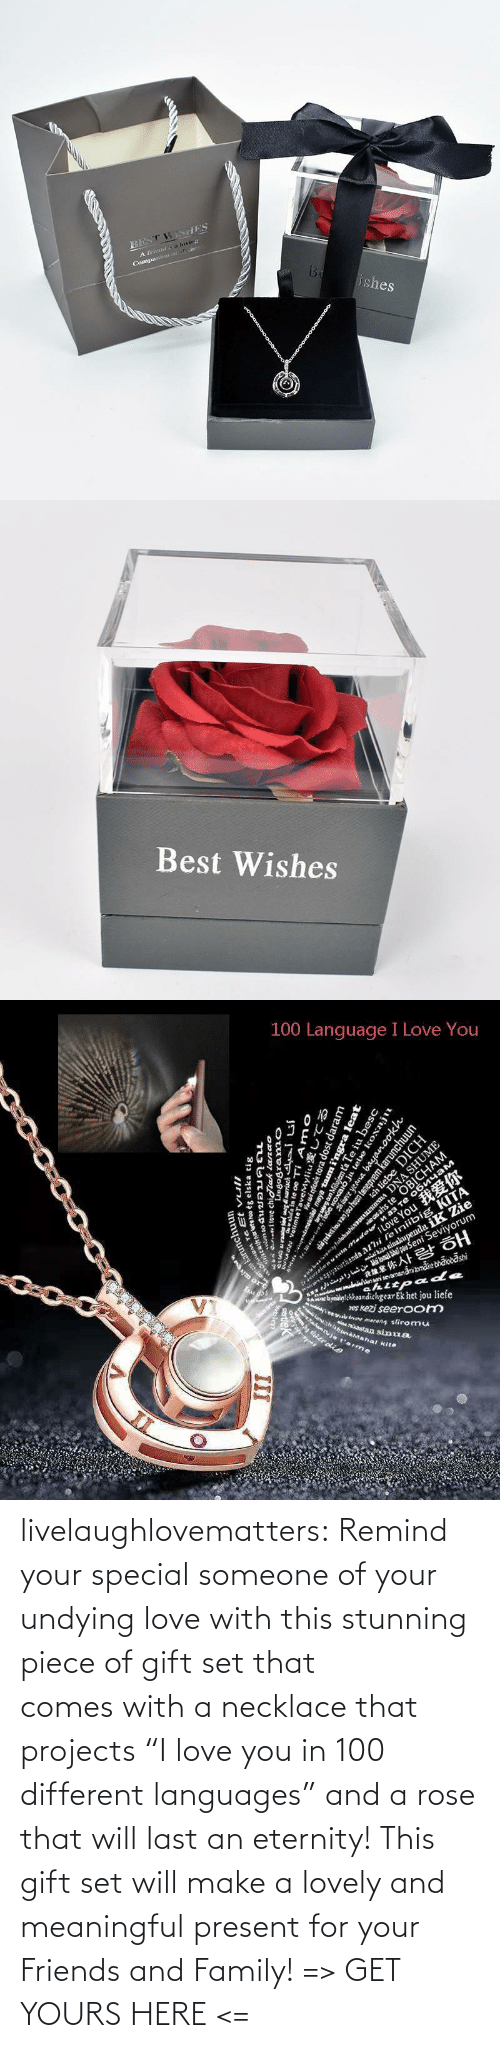 "Tumblr Com: livelaughlovematters:  Remind your special someone of your undying love with this stunning piece of gift set that comes with a necklace that projects ""I love you in 100 different languages"" and a rose that will last an eternity! This gift set will make a lovely and meaningful present for your Friends and Family! => GET YOURS HERE <="